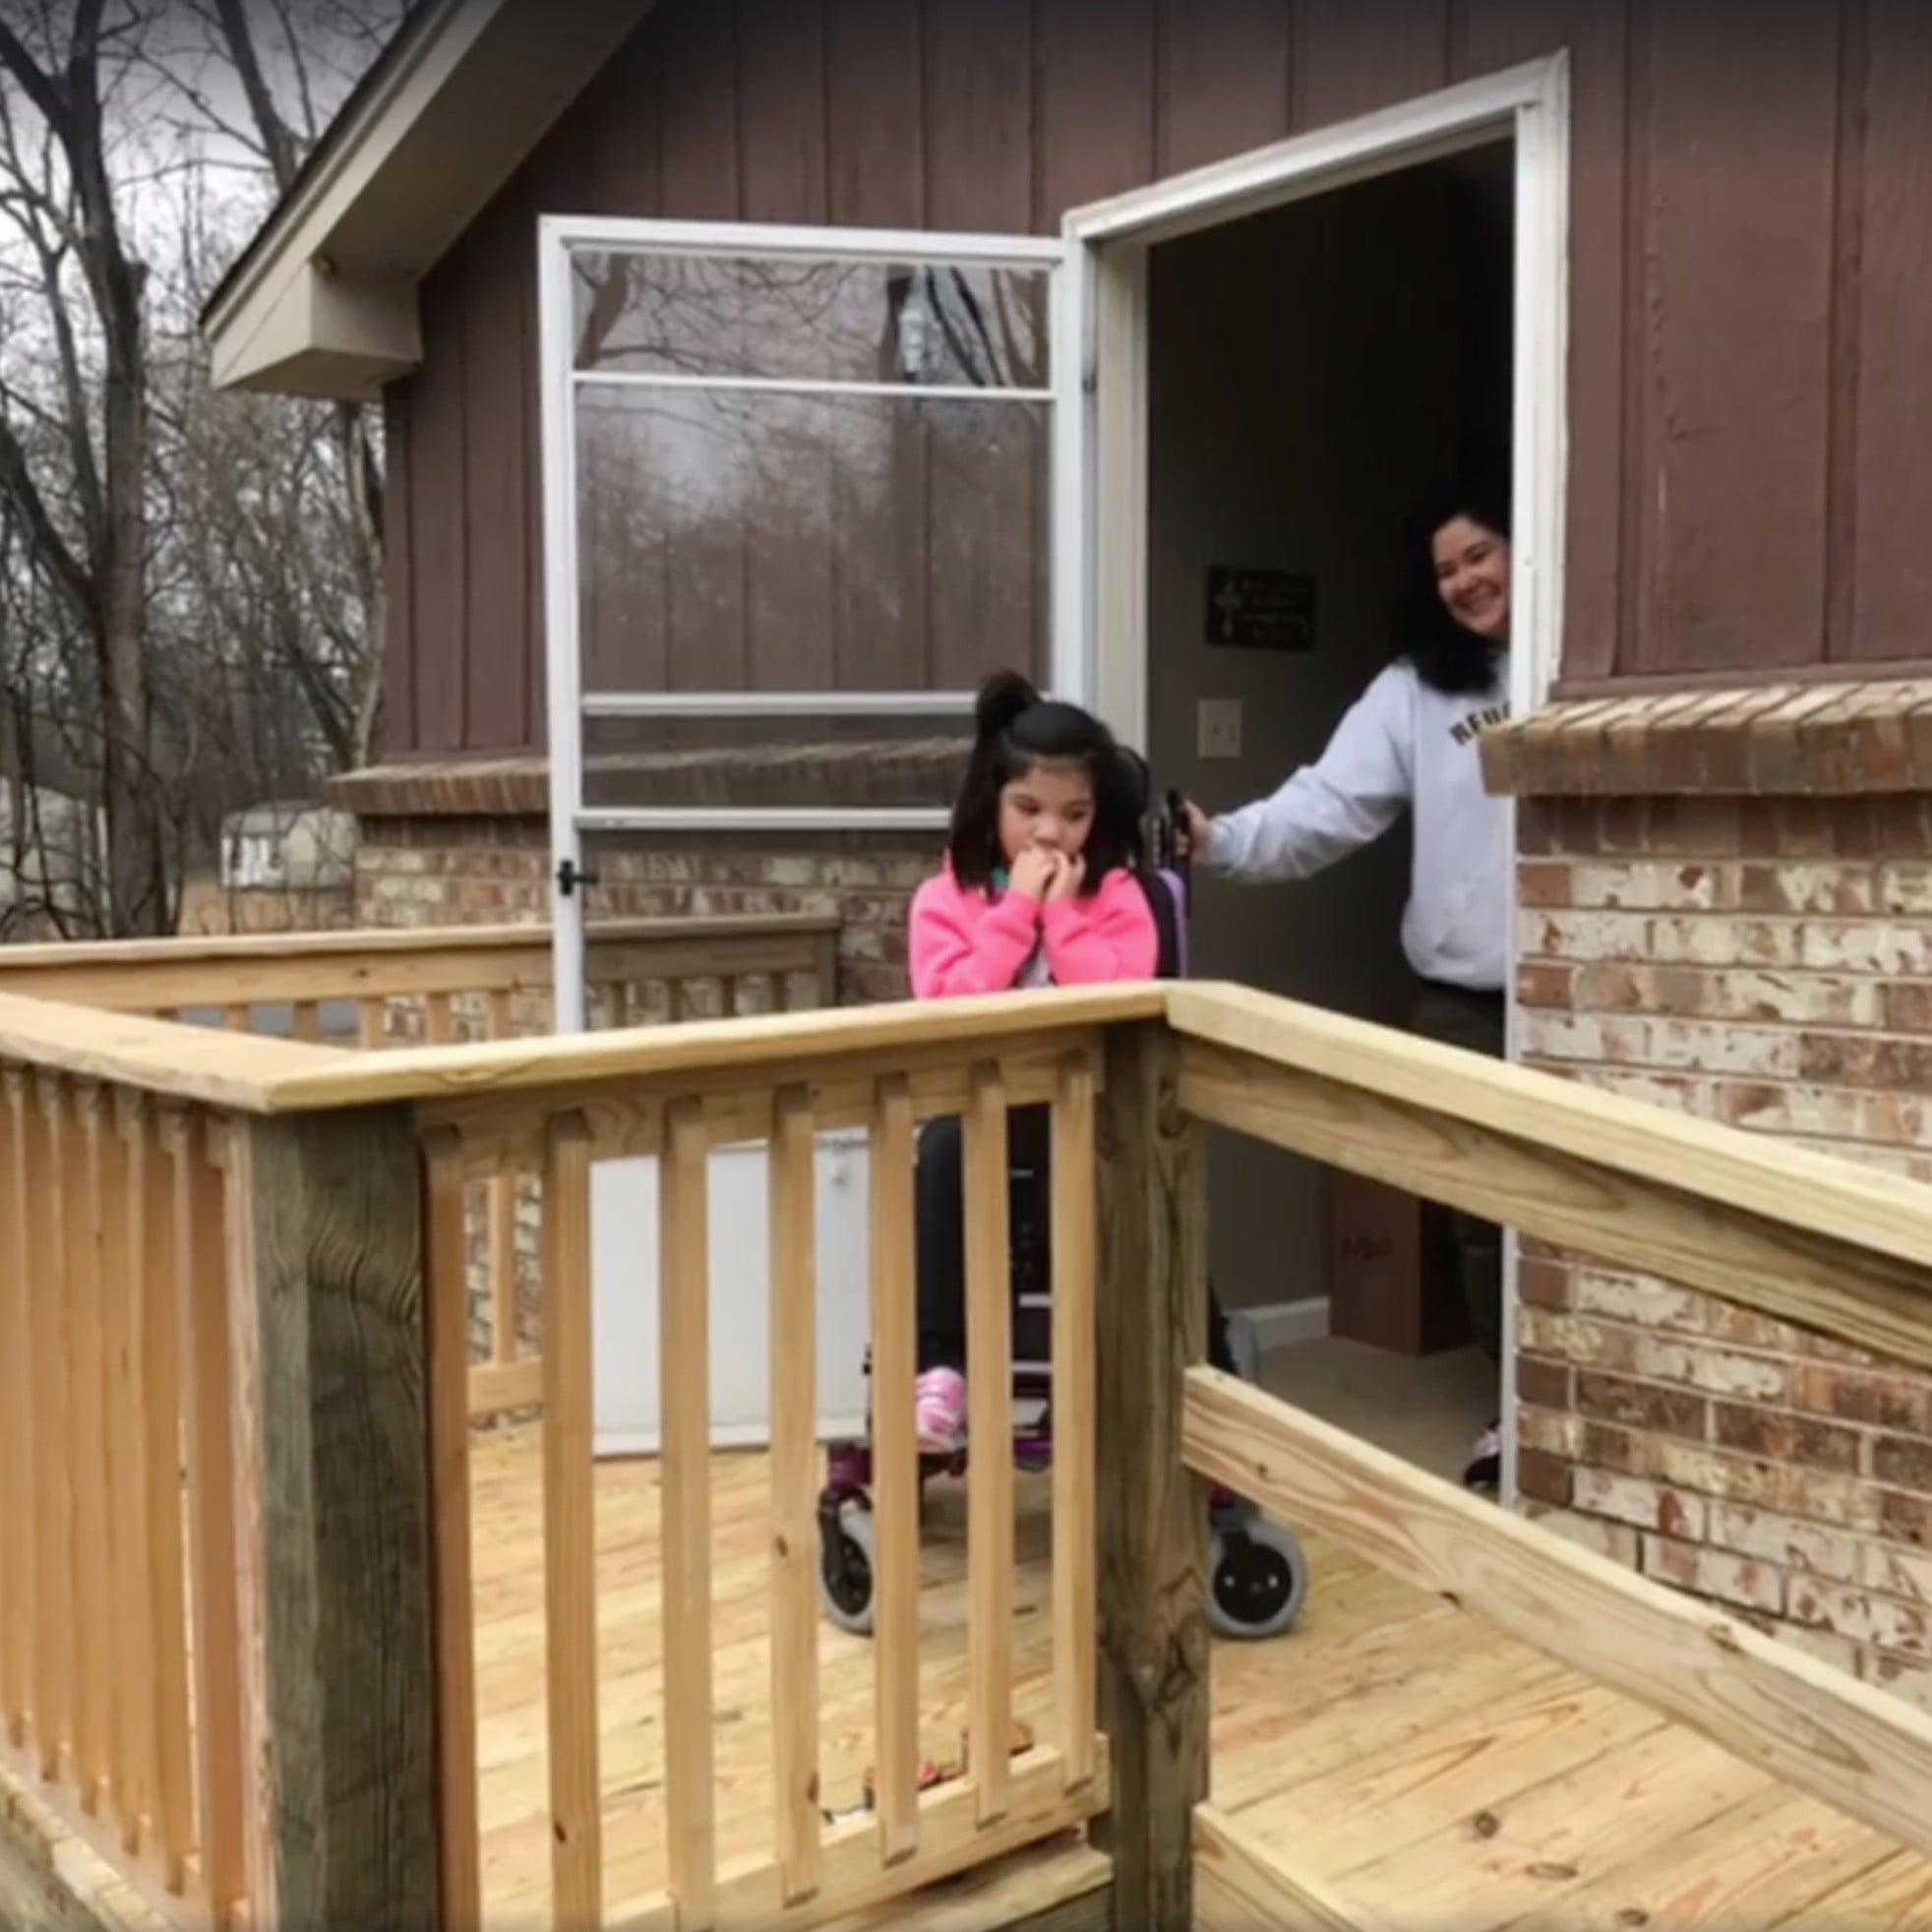 Bus Driver Builds Ramp For Girl in Wheelchair